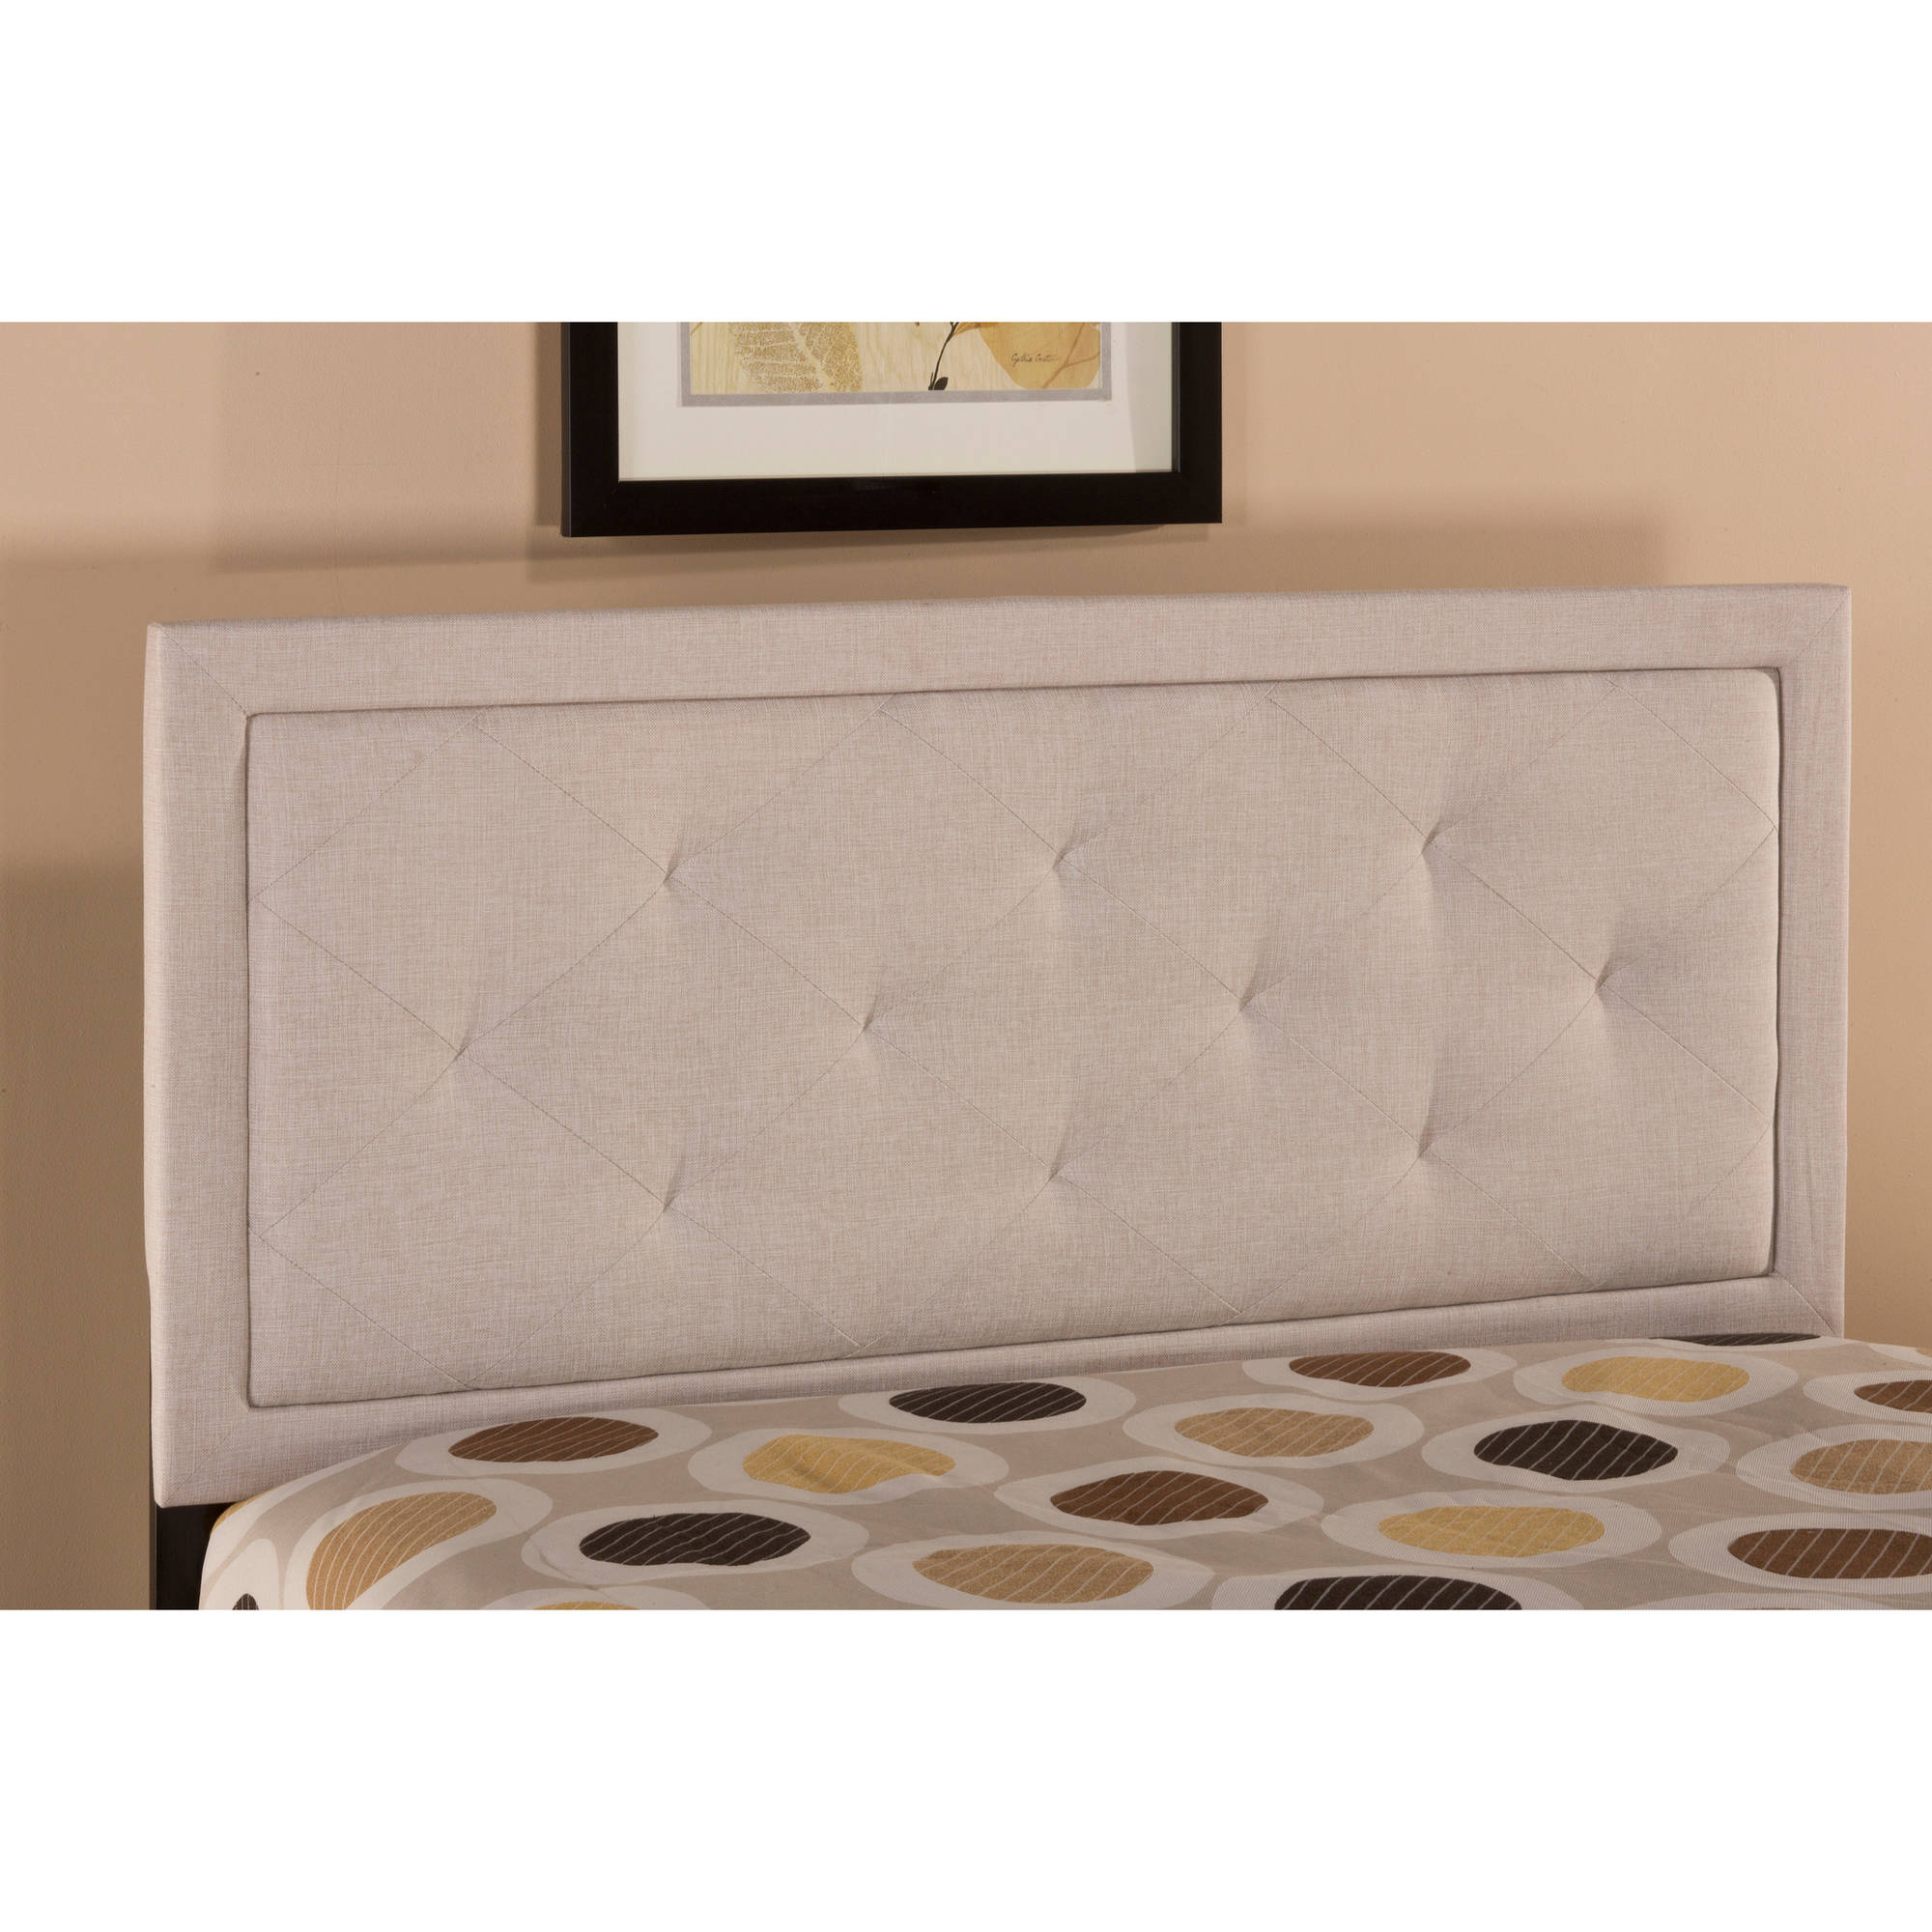 Hillsdale Furniture Becker King Headboard with Bedframe, Cream by Hillsdale